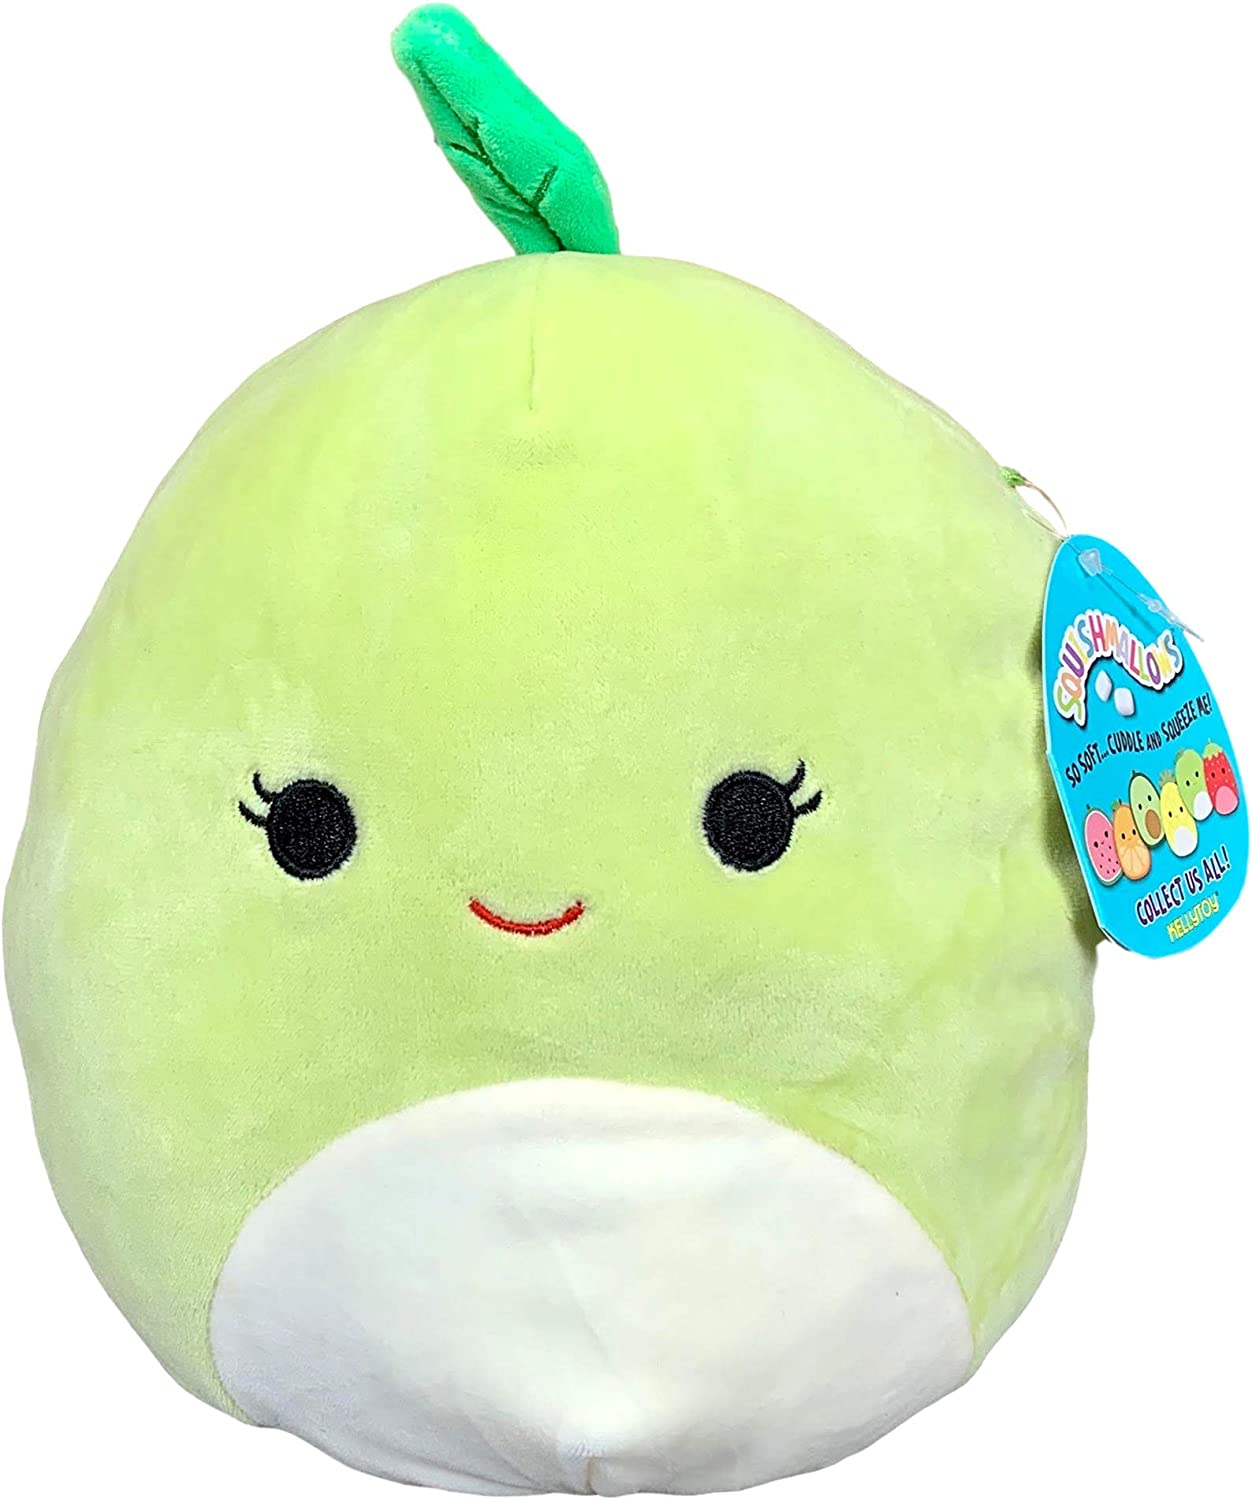 Squishmallow 8 Inch Ashley Apple Plush Toy, Super Pillow Soft Plush Stuffed Animal, Green